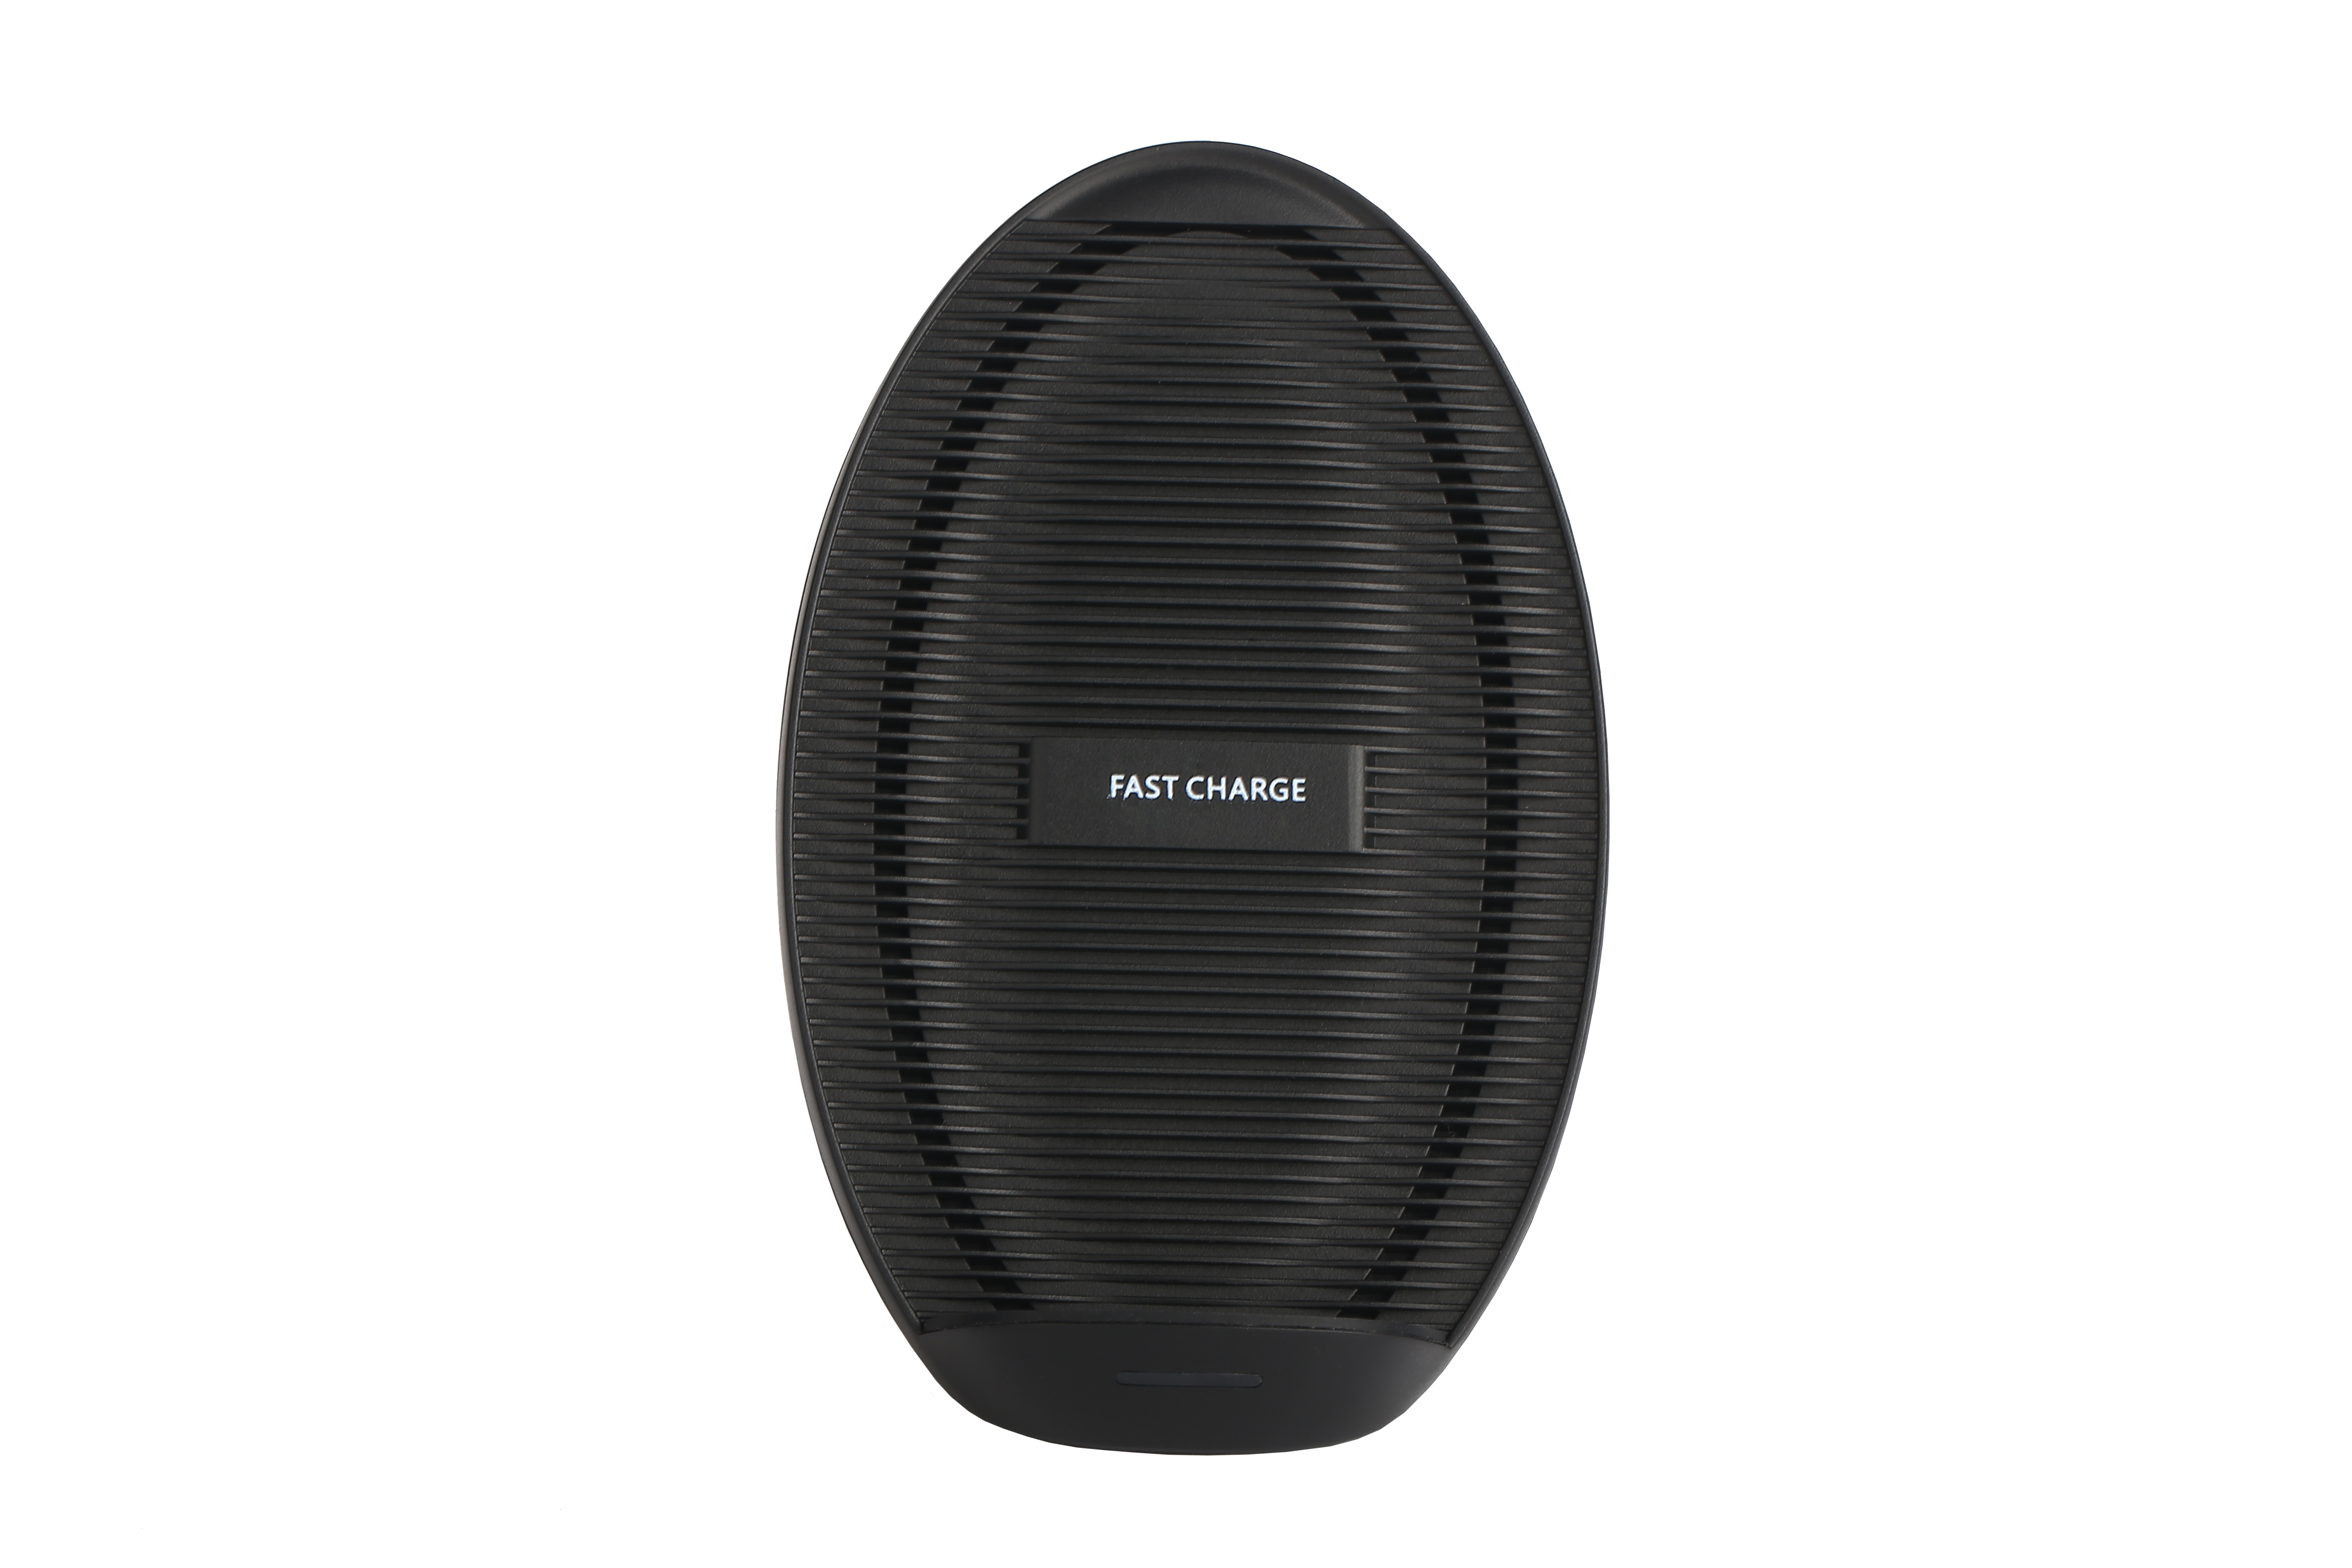 Super fast wireless charger S600